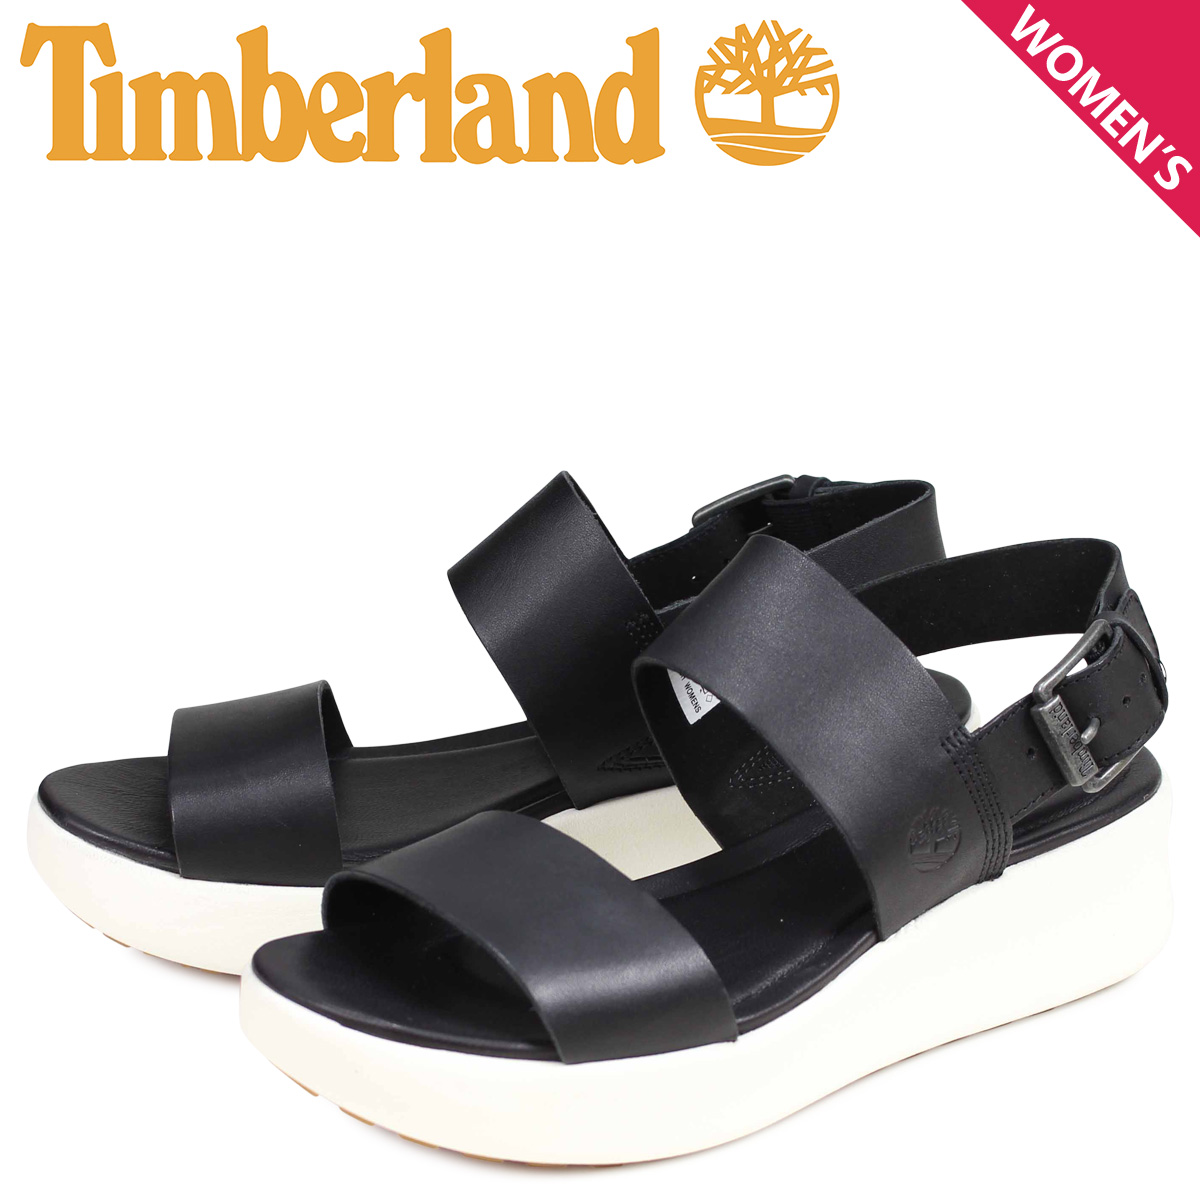 Timberland Timberland sandals strap sandals Lady's WOMENS LOS ANGELES WIND 2 SANDALS black black A1WX8015